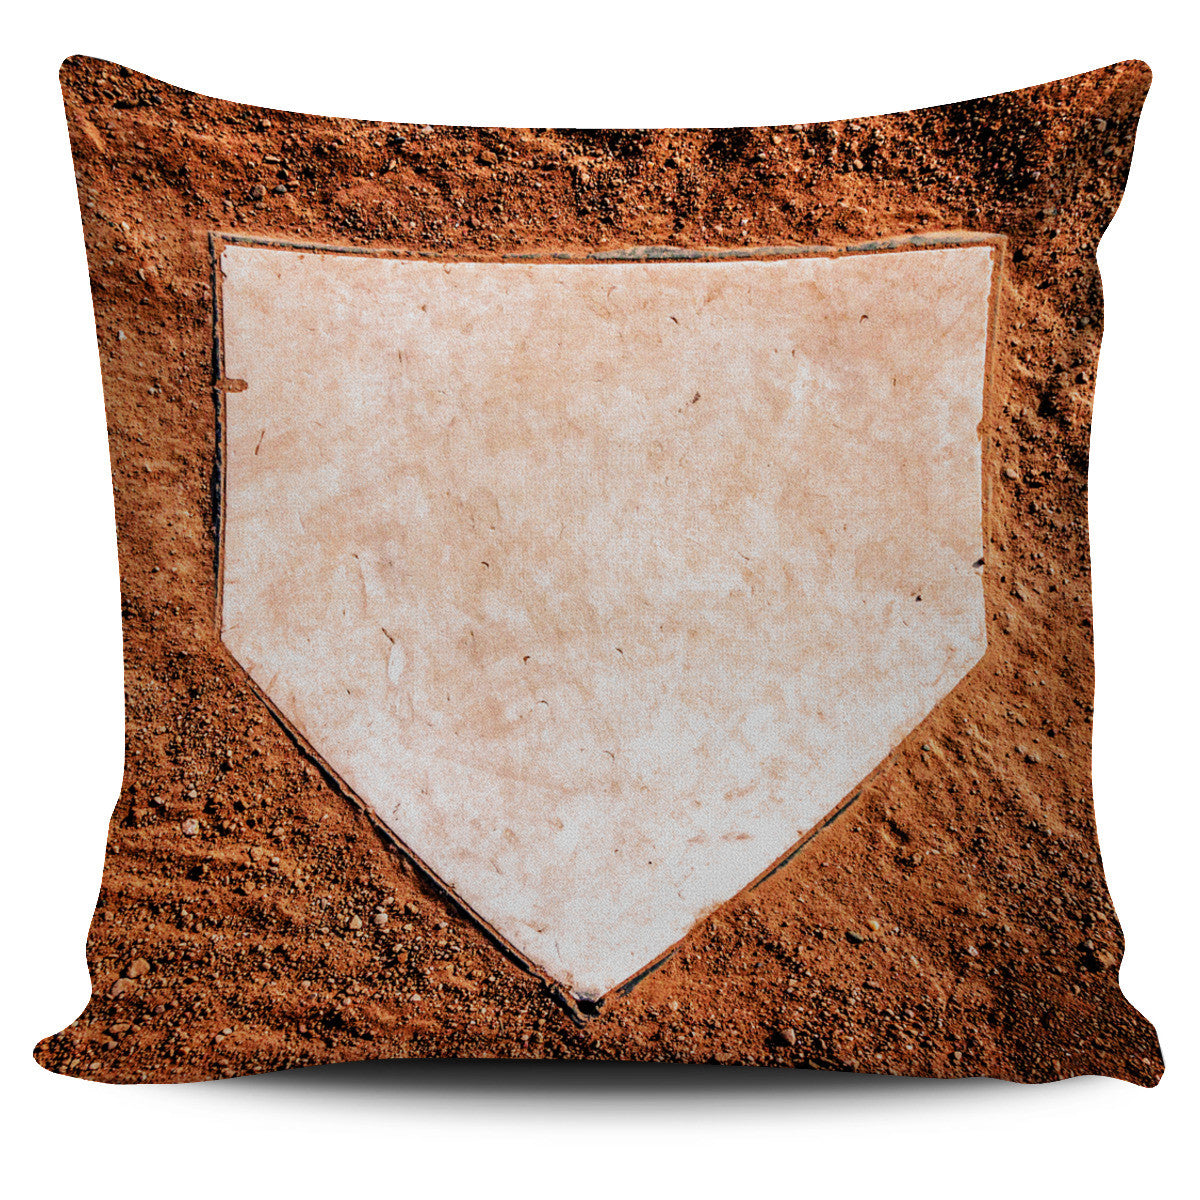 Baseball Pillow Case 1/3